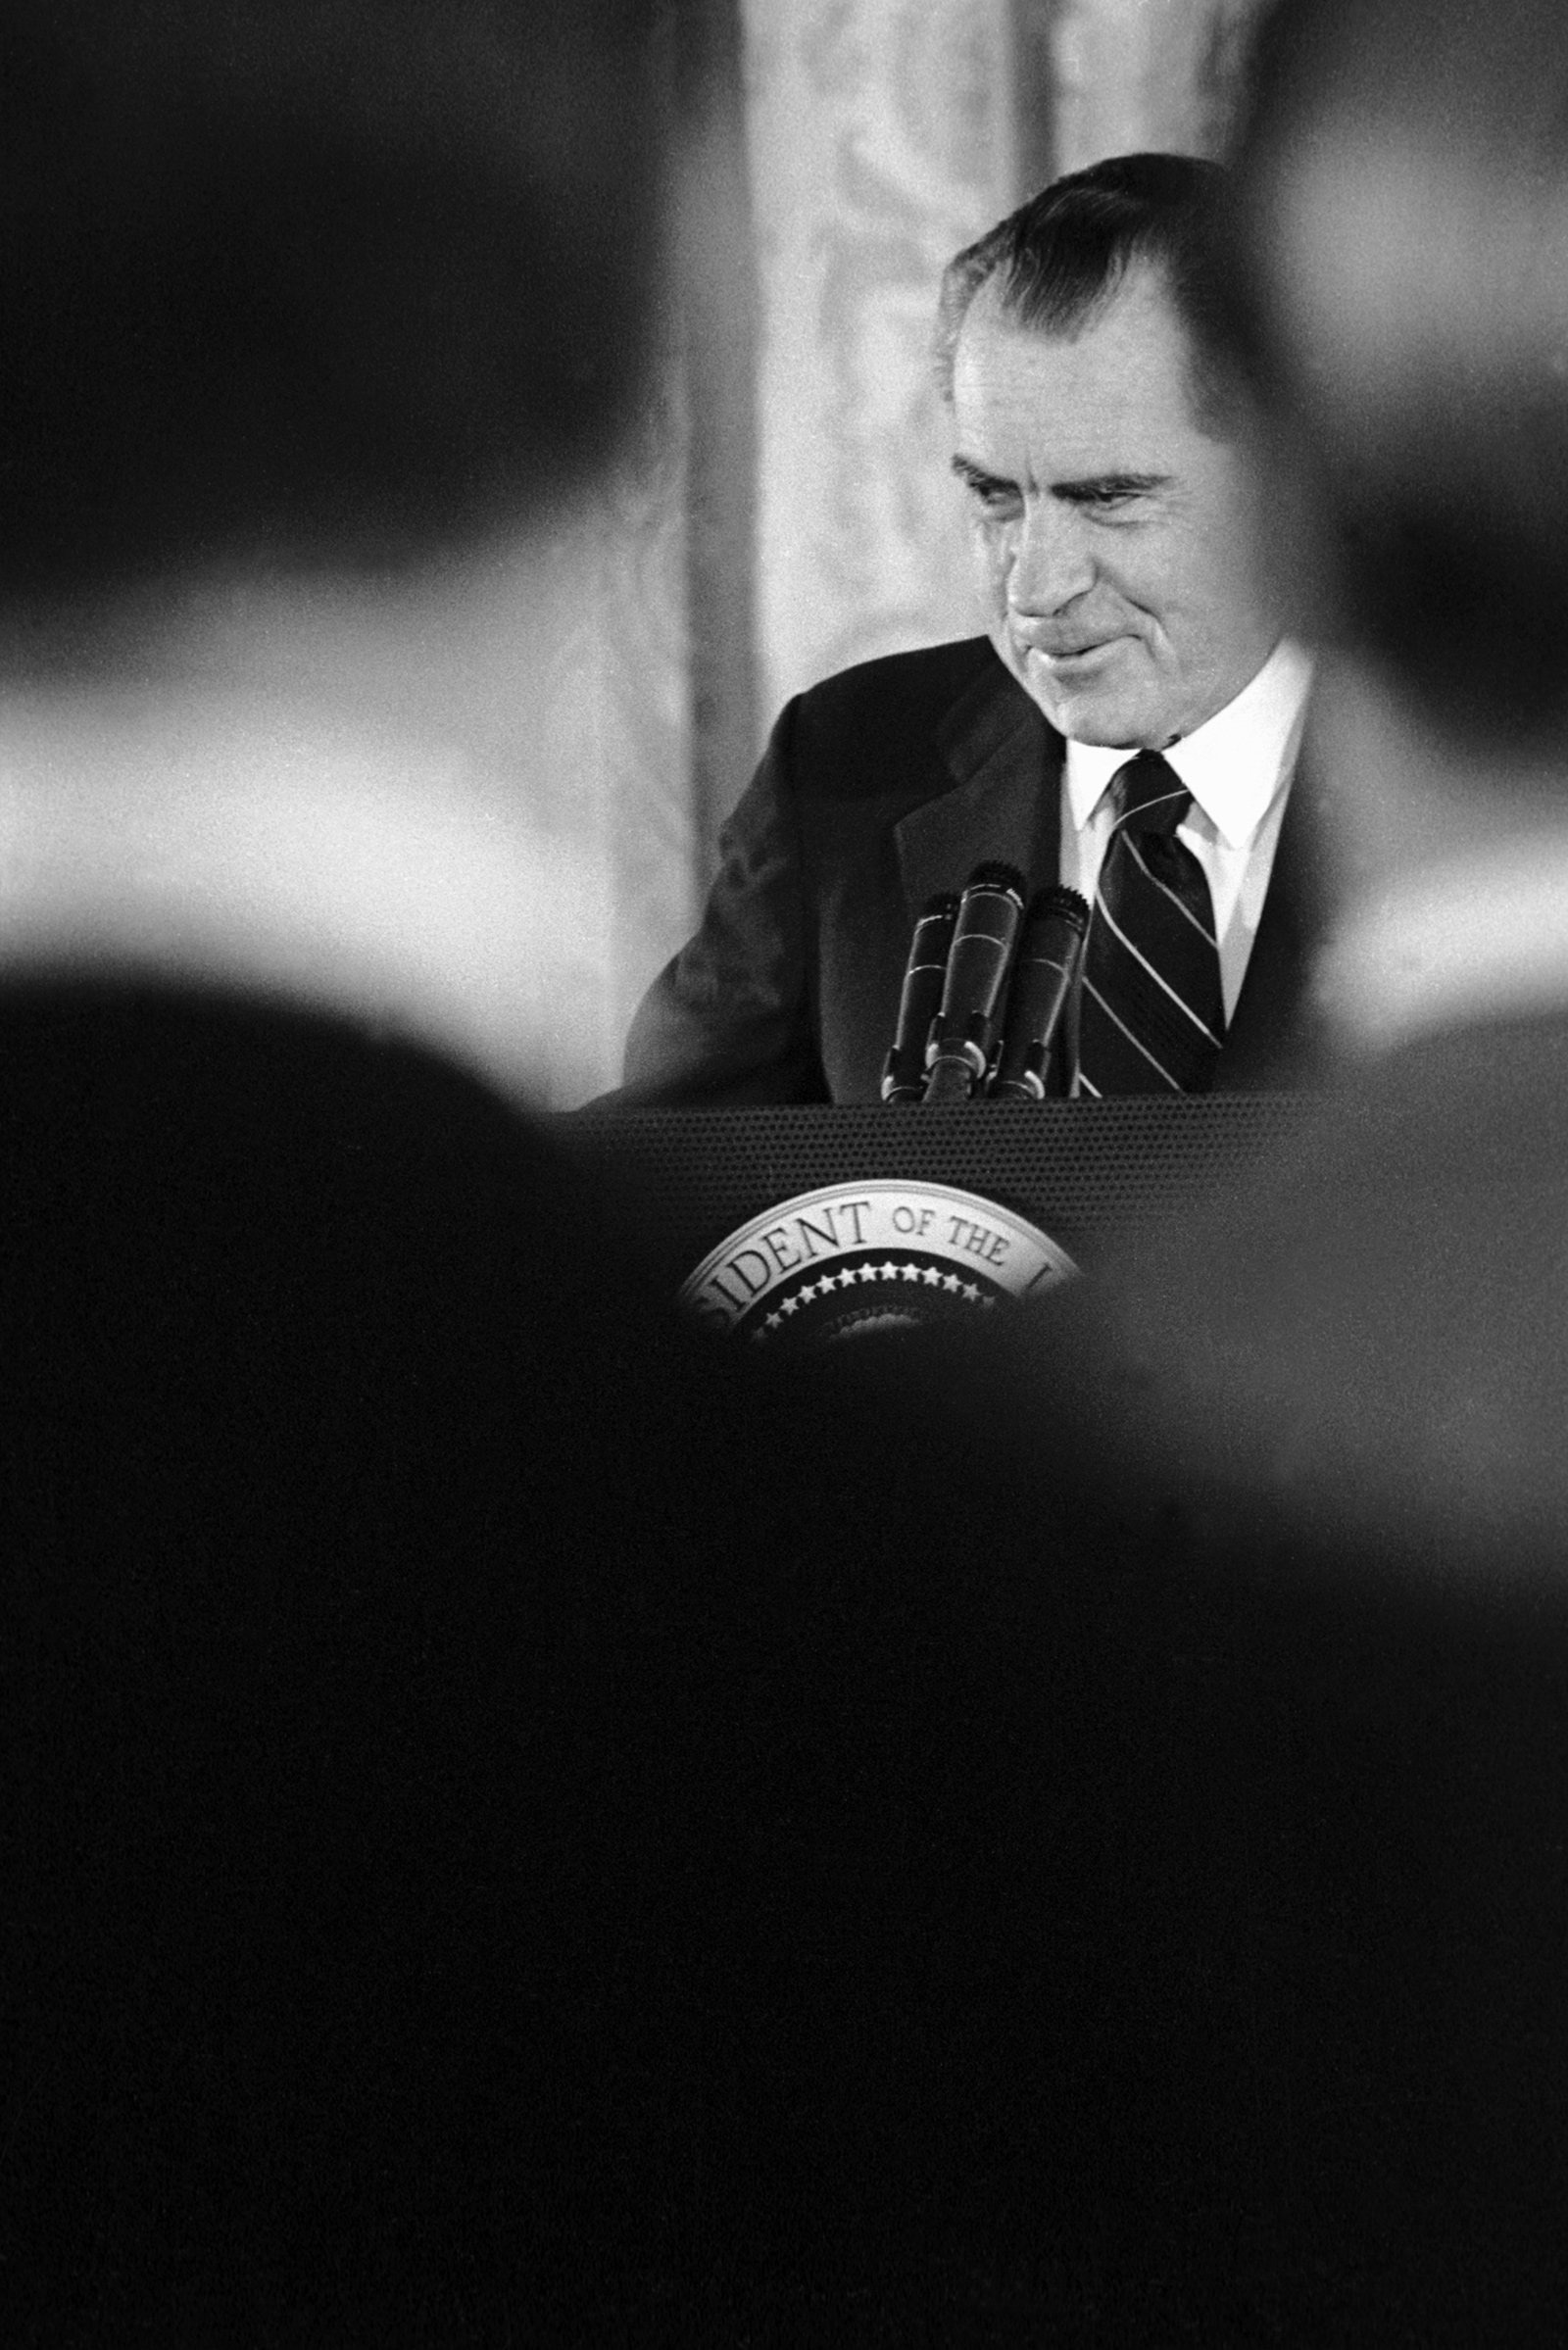 Richard Nixon at a press conference at the White House, October 1973